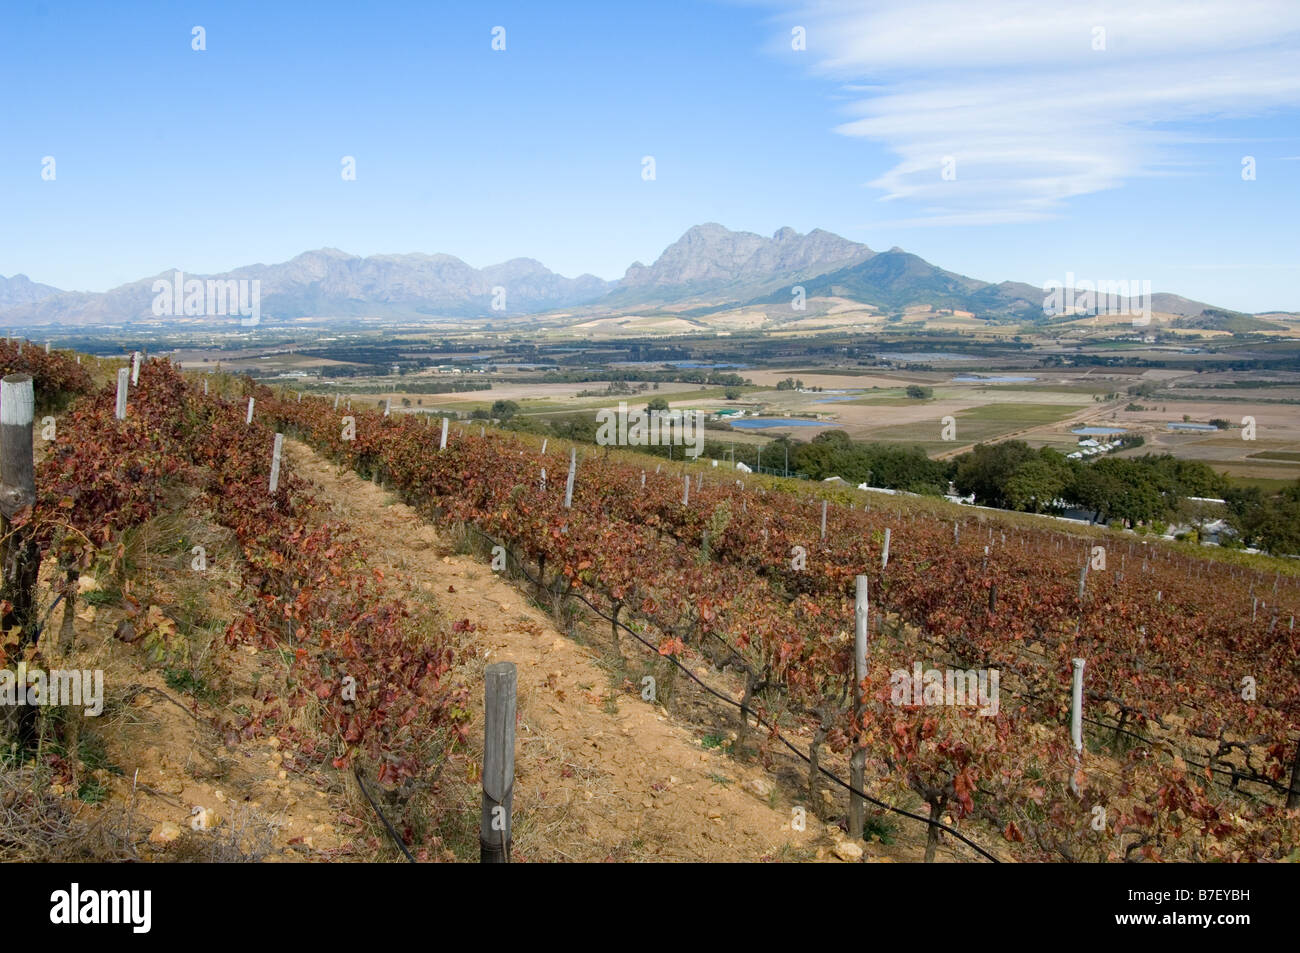 Vineyard on the Fairview estate Paarl Western Cape South Africa - Stock Image